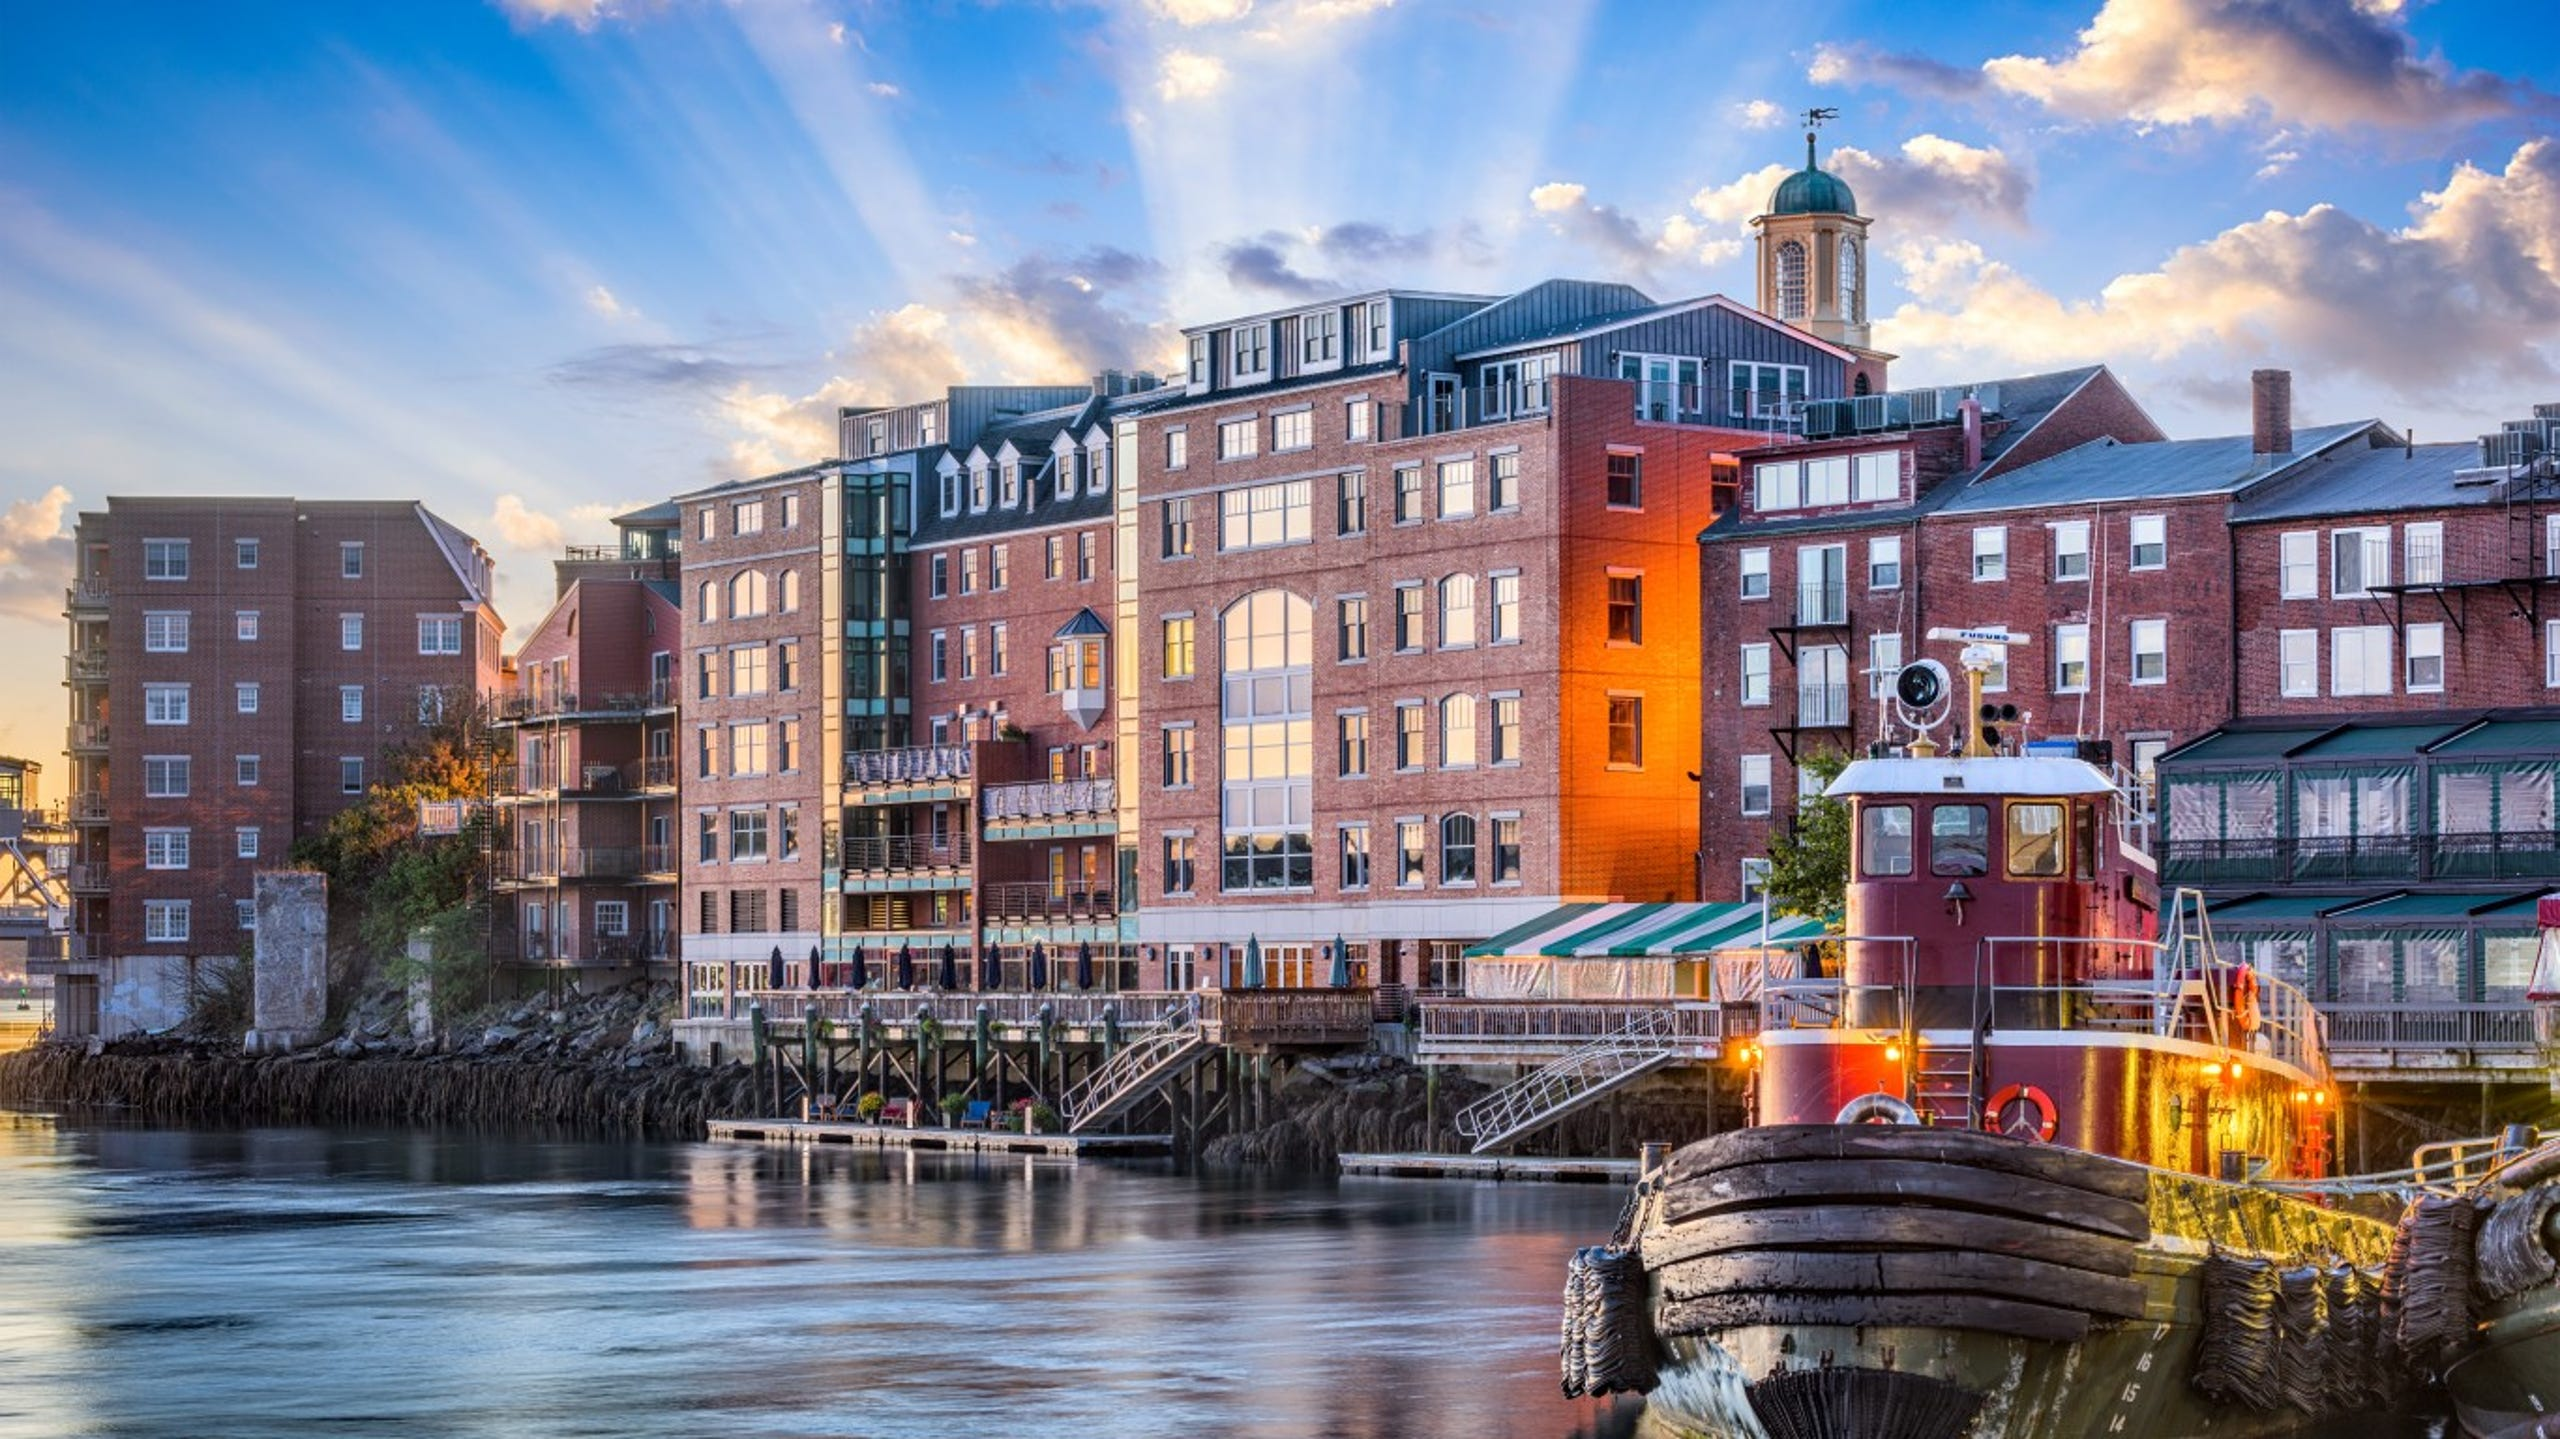 Portsmouth, New Hampshire • The seaside town of Portsmouth is a bustling New England gem, with a vibrant, walkable downtown. Restaurants, boutiques and colonial architecture, along with parks and waterfront views, make this city a great place to explore for the weekend. Take a boat tour of the harbor to see lighthouses, the old port and multiple forts, or visit the Strawbery Banke Museum for living history exhibits.